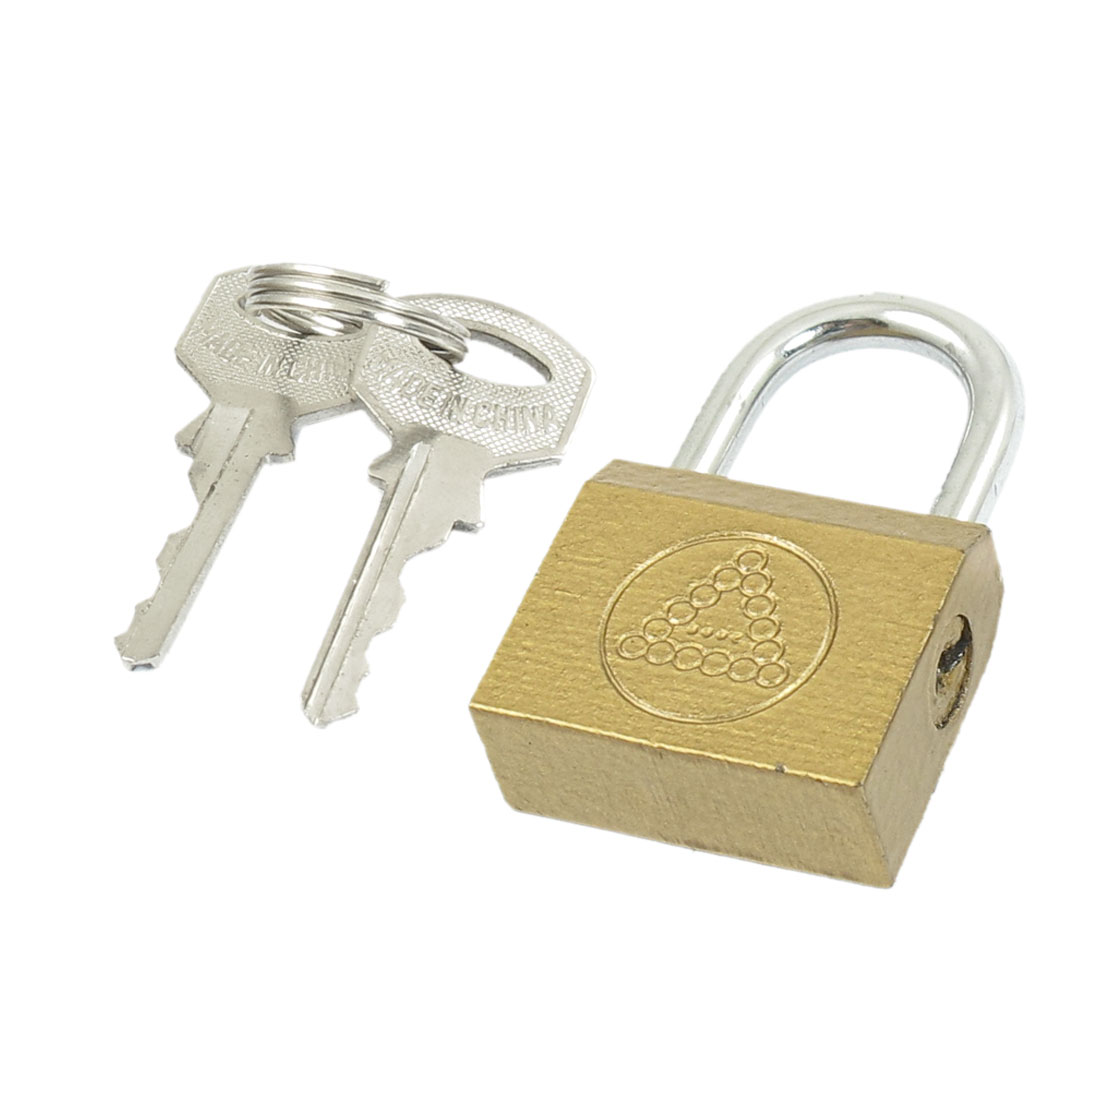 Gold Tone Cabinet Jewlery Box Packsack Safety Brass Padlock w 2 Pcs Keys